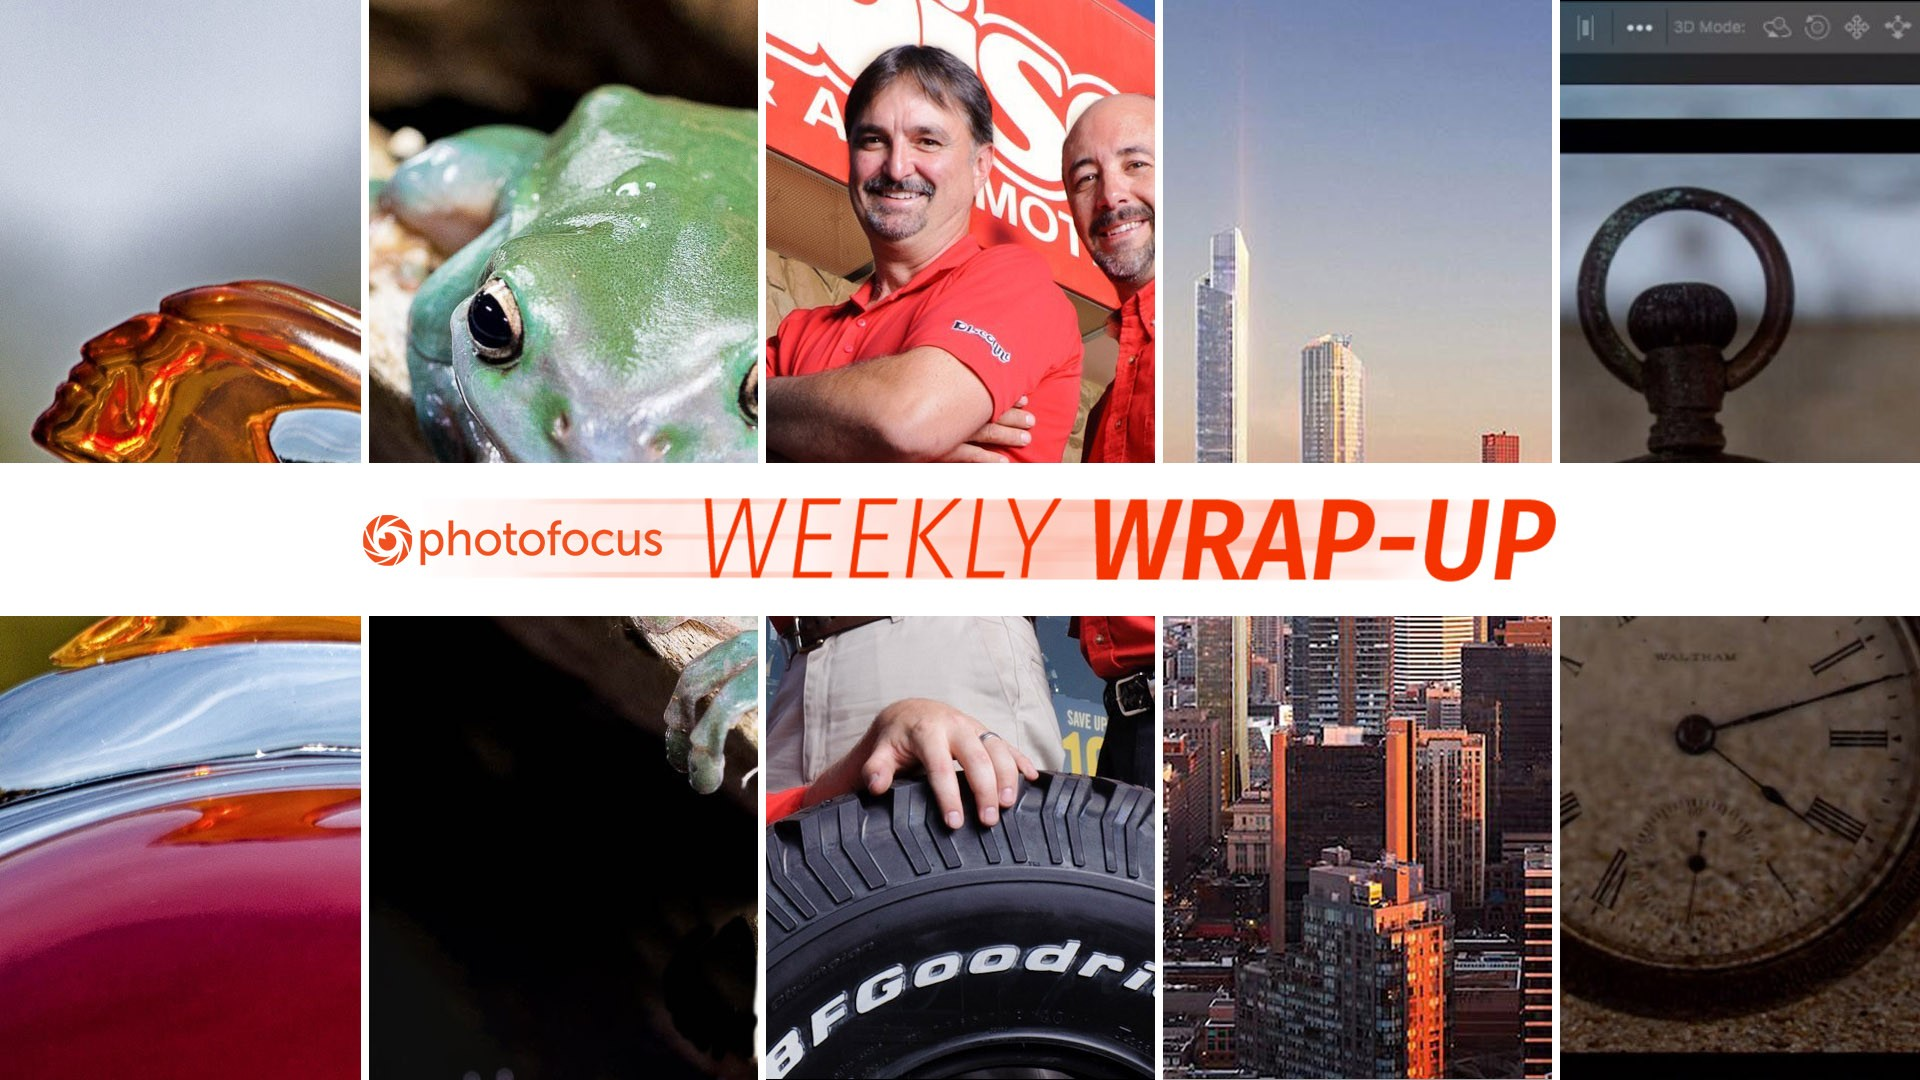 The Photofocus Weekly Wrap-Up for June 16-22, 2019